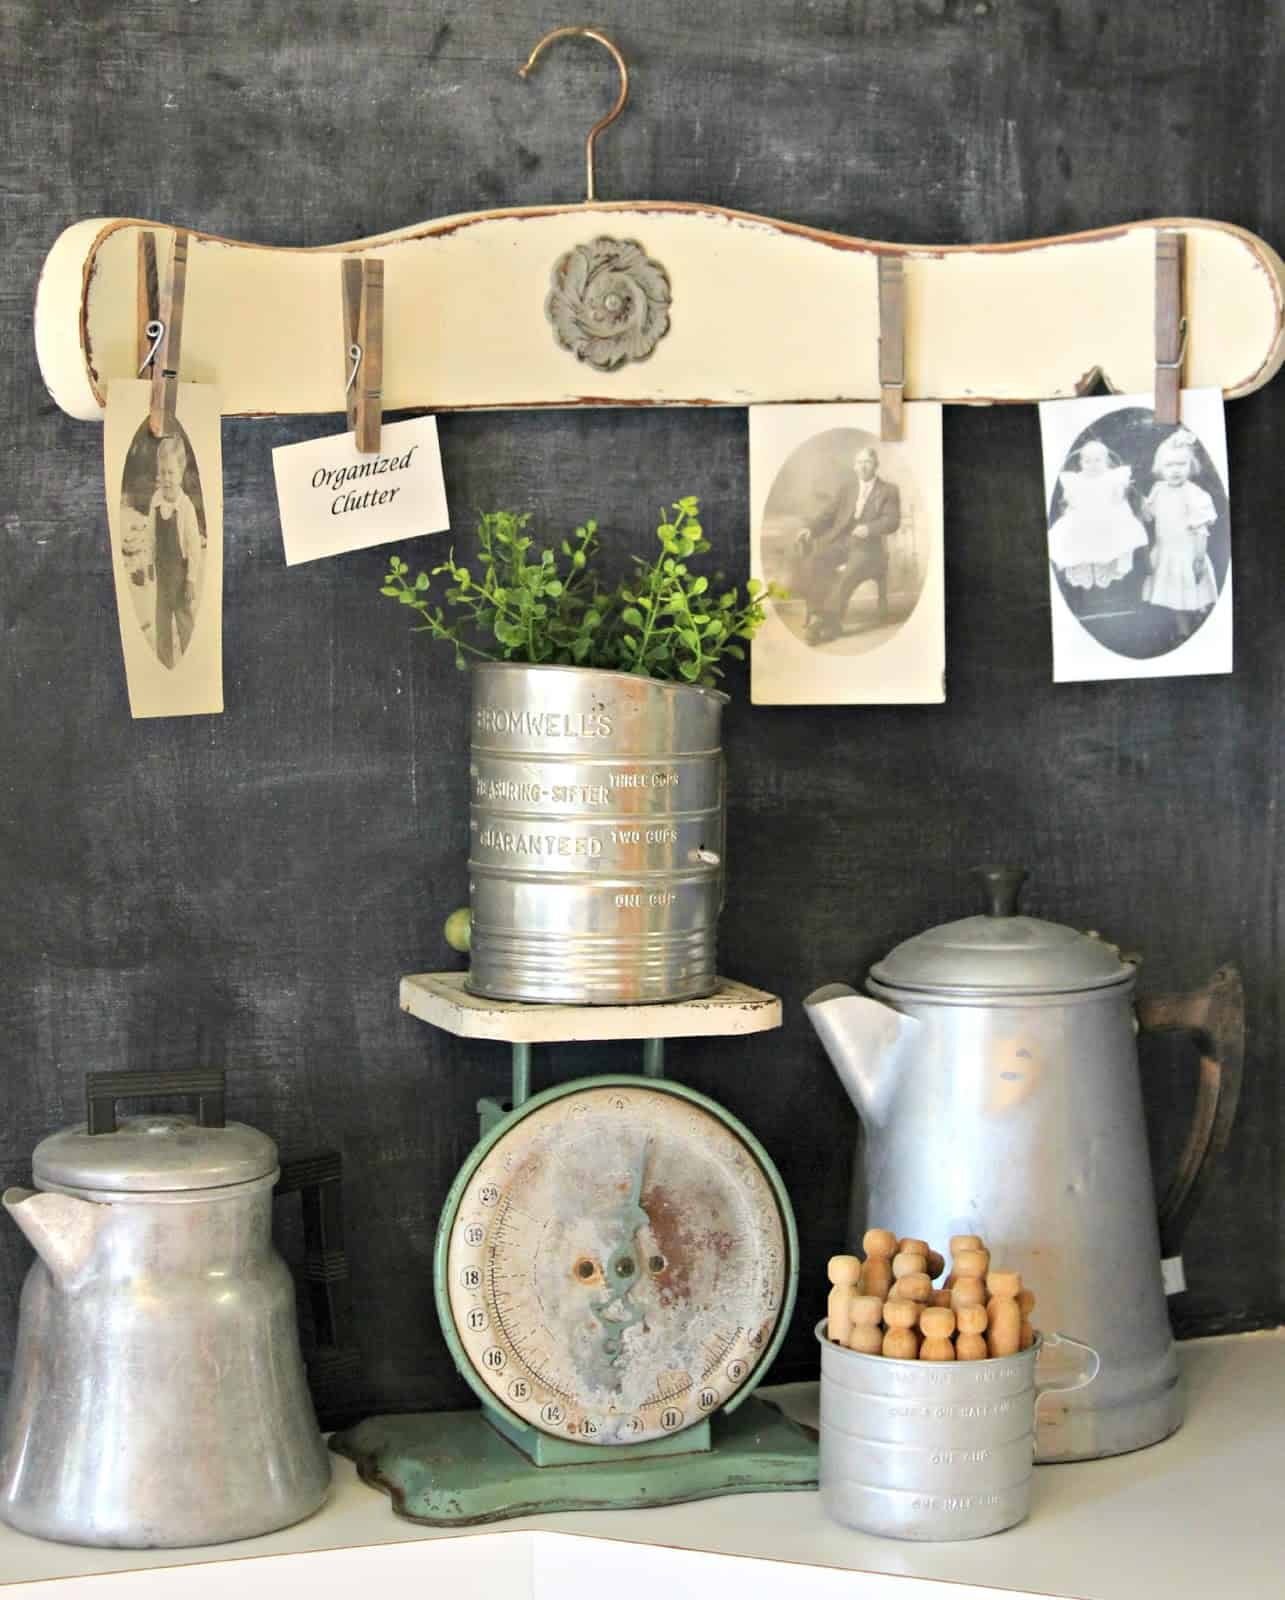 25 Genius Ways To Repurpose Old Wooden Chairs You Need To See